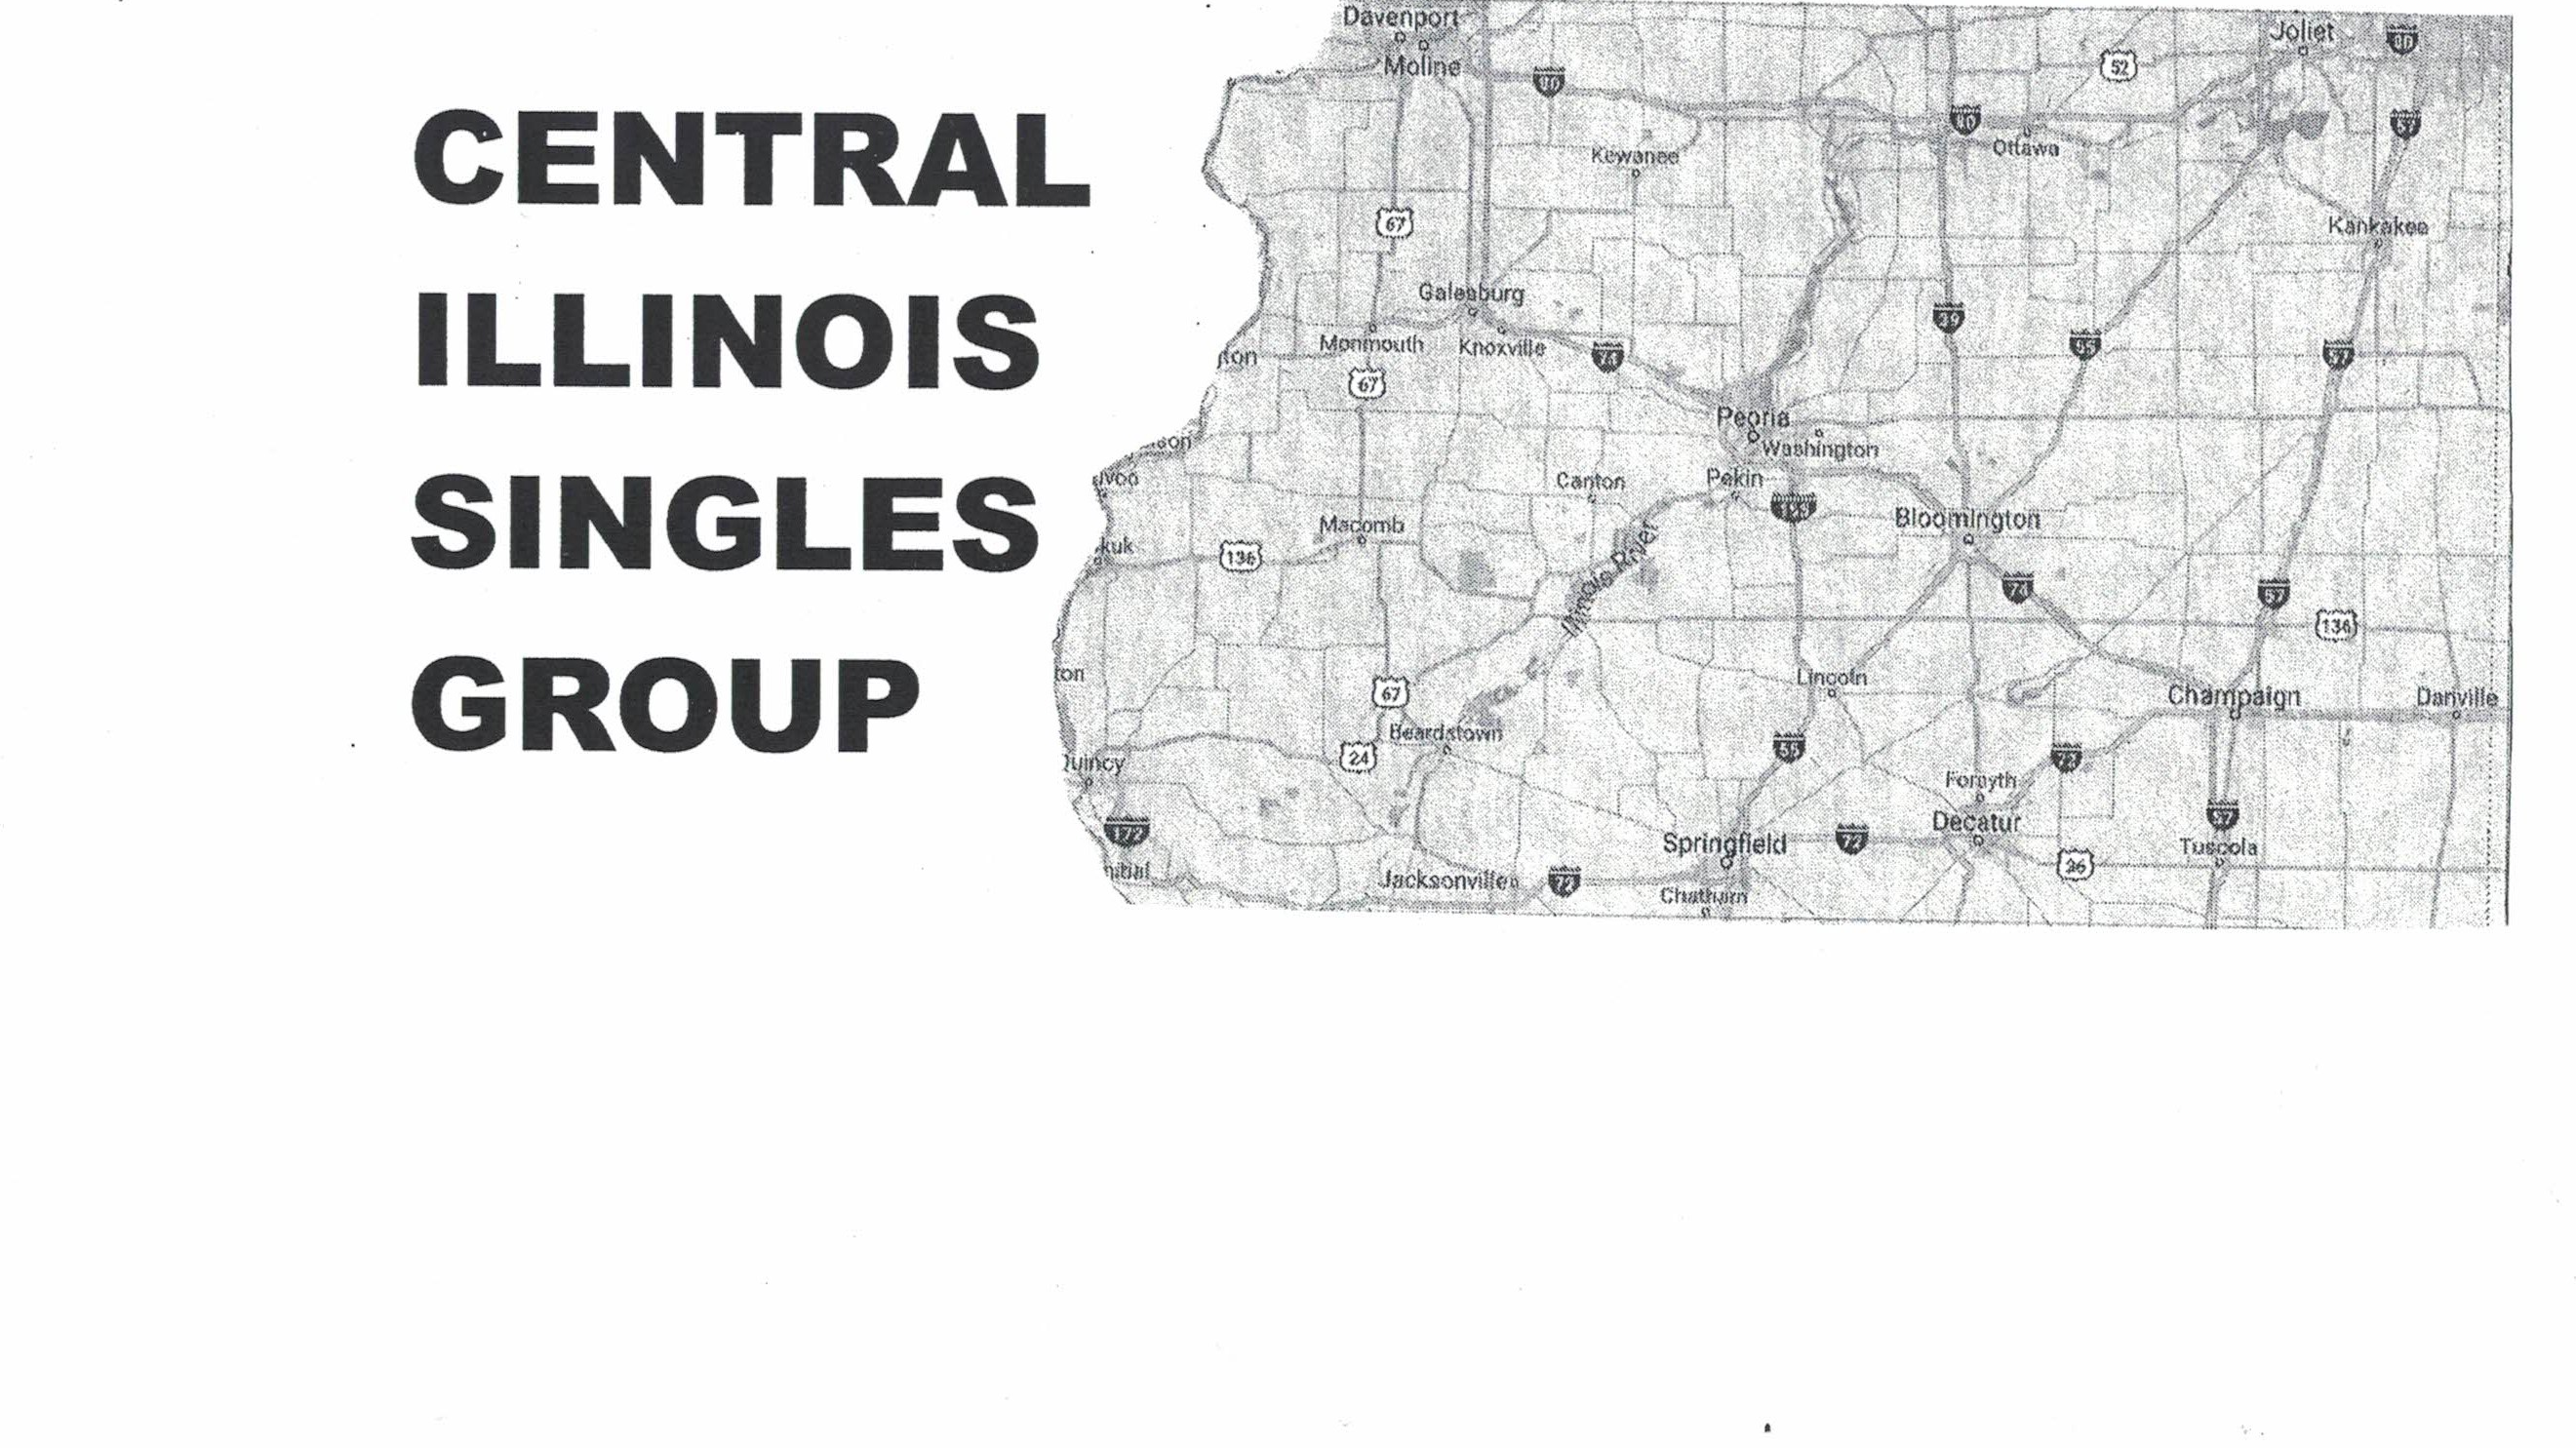 Central Illinois Singles Group